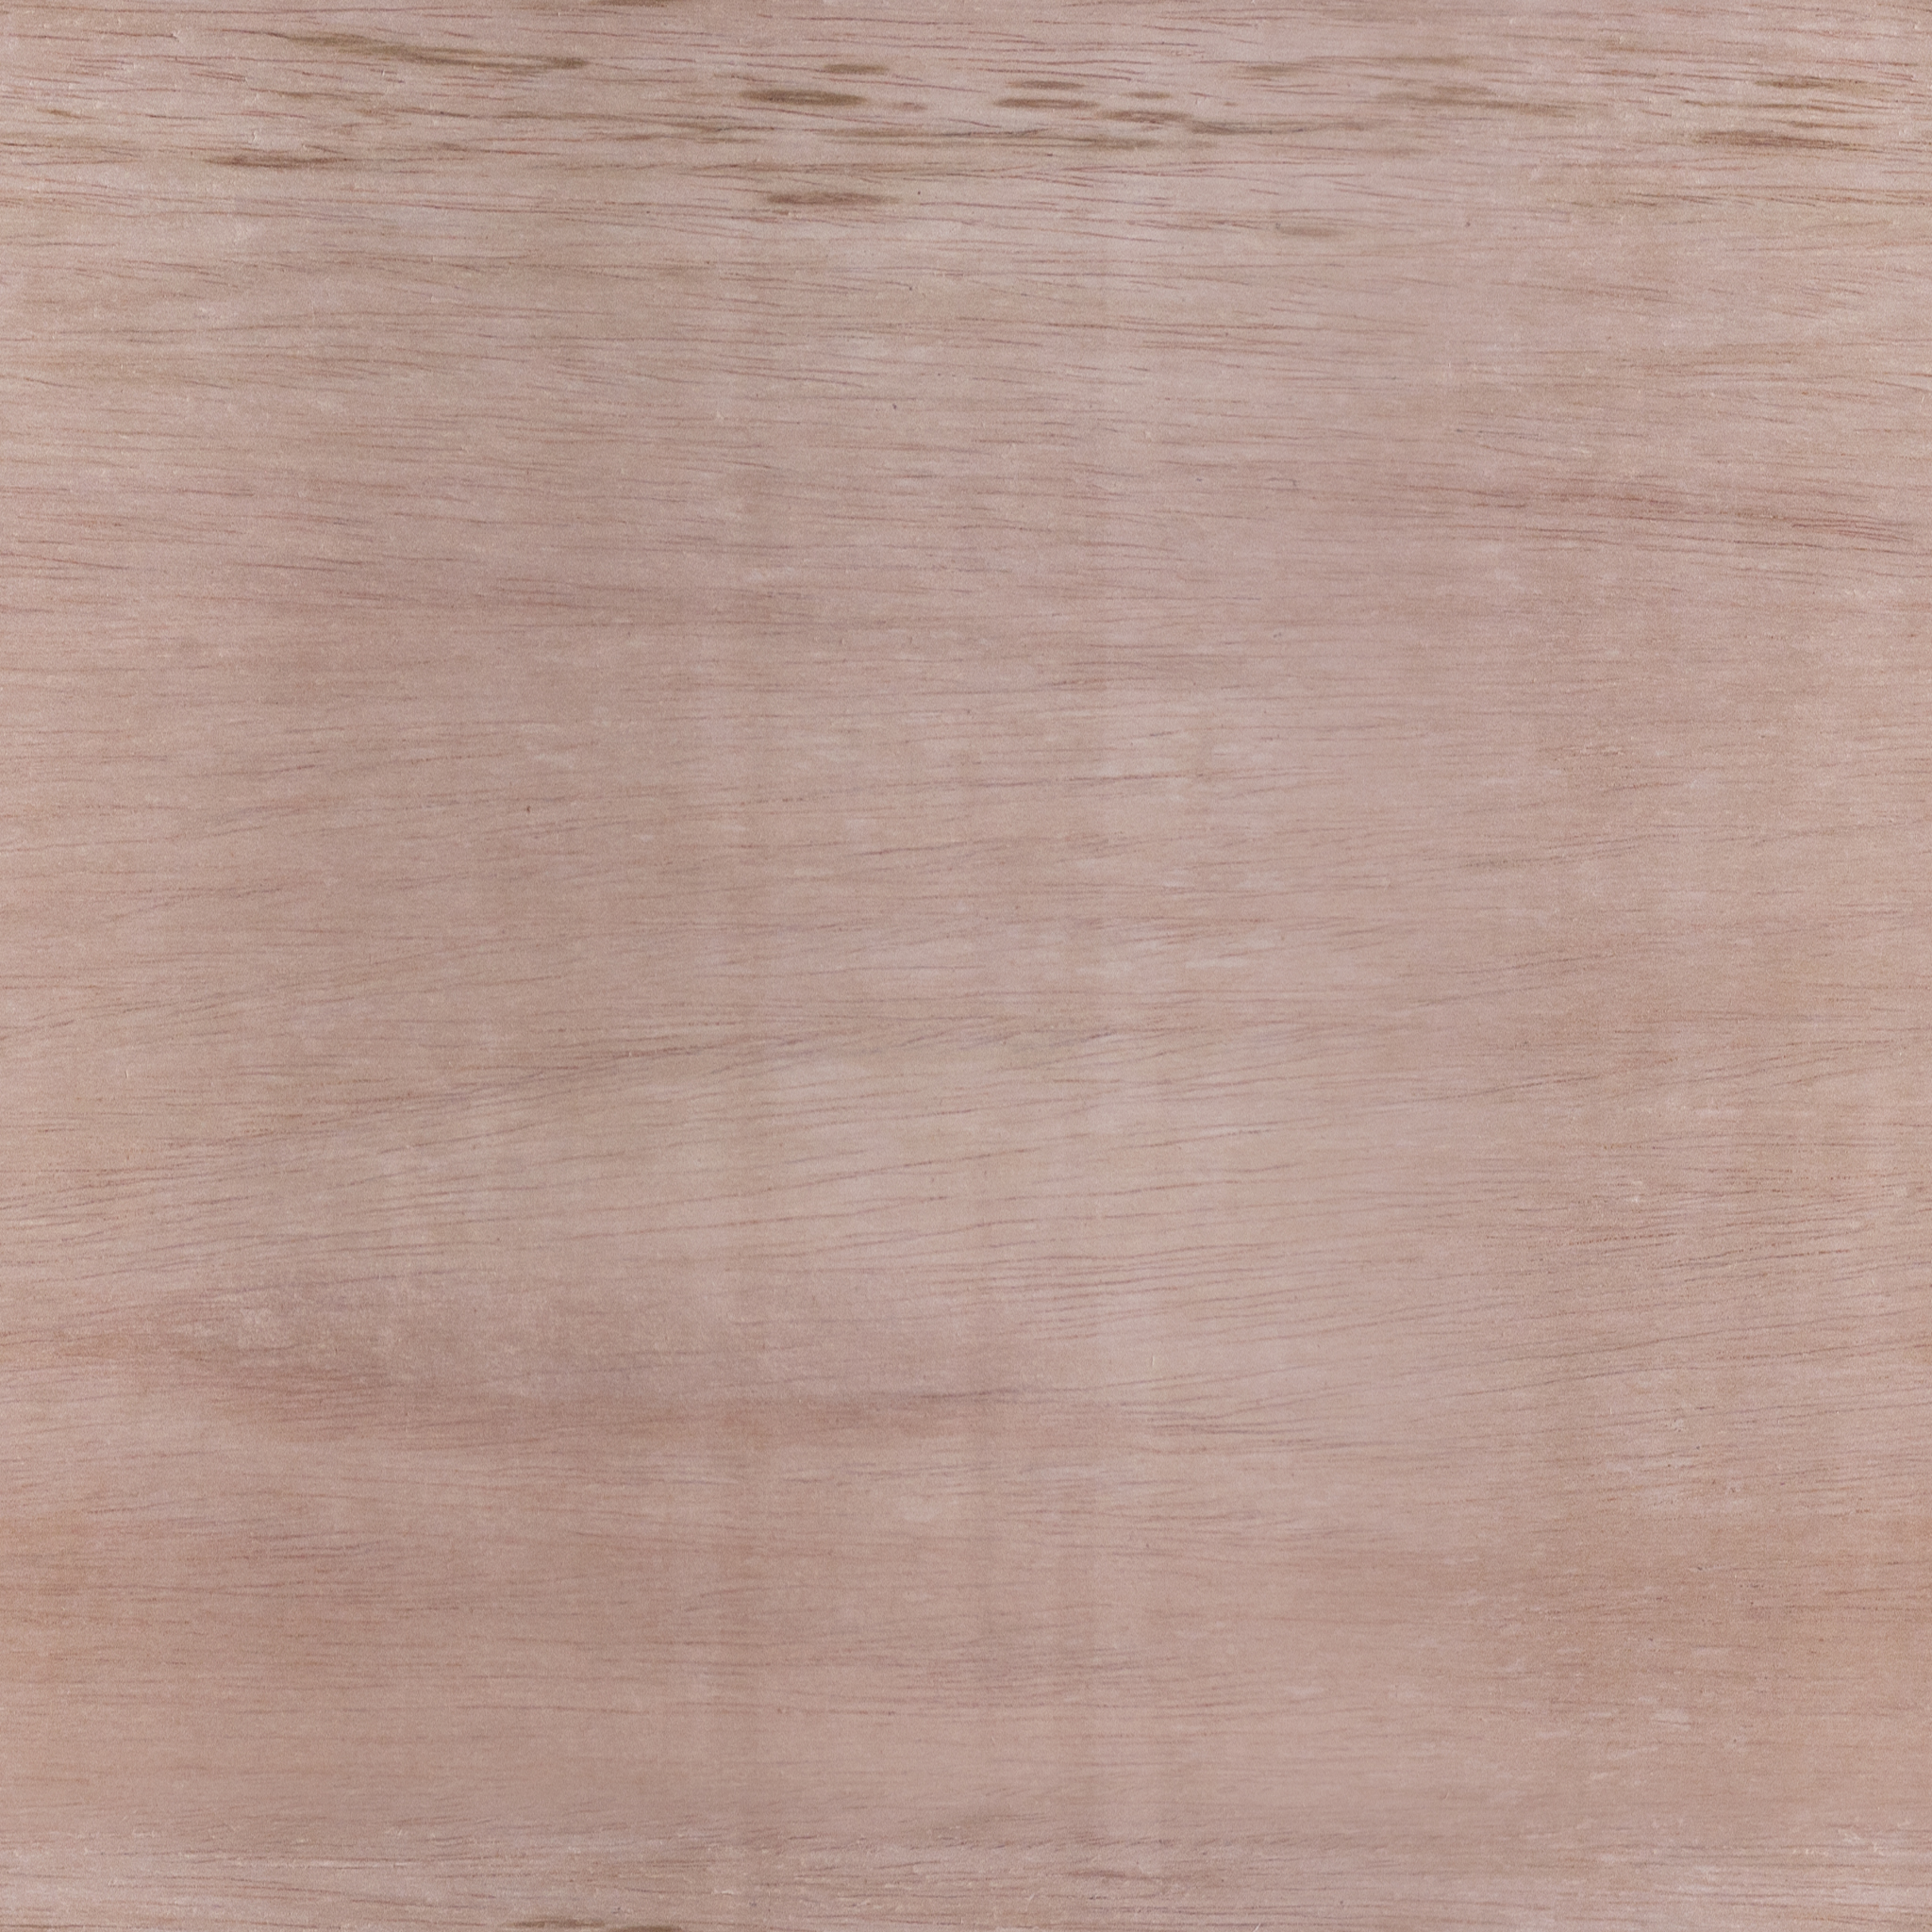 Antique Beige Wood.jpg